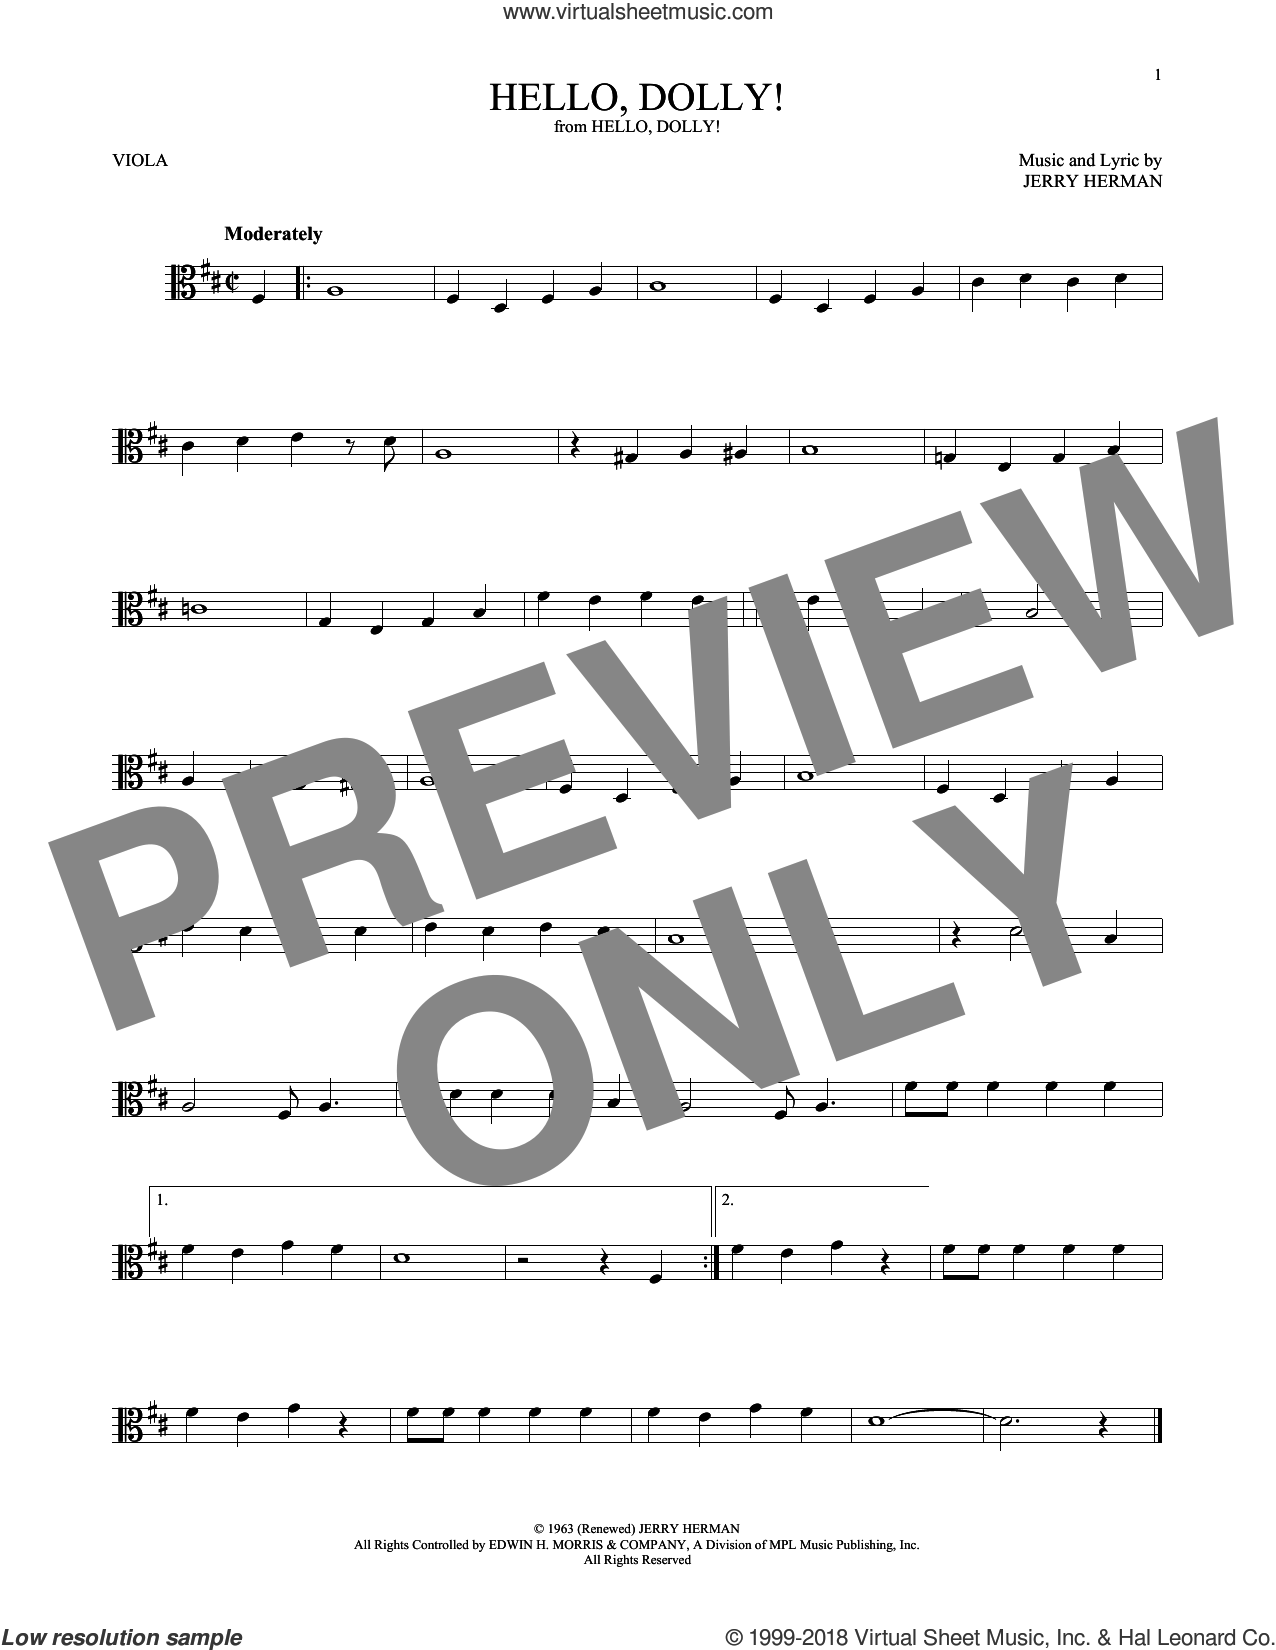 Hello, Dolly! sheet music for viola solo by Louis Armstrong and Jerry Herman, intermediate skill level